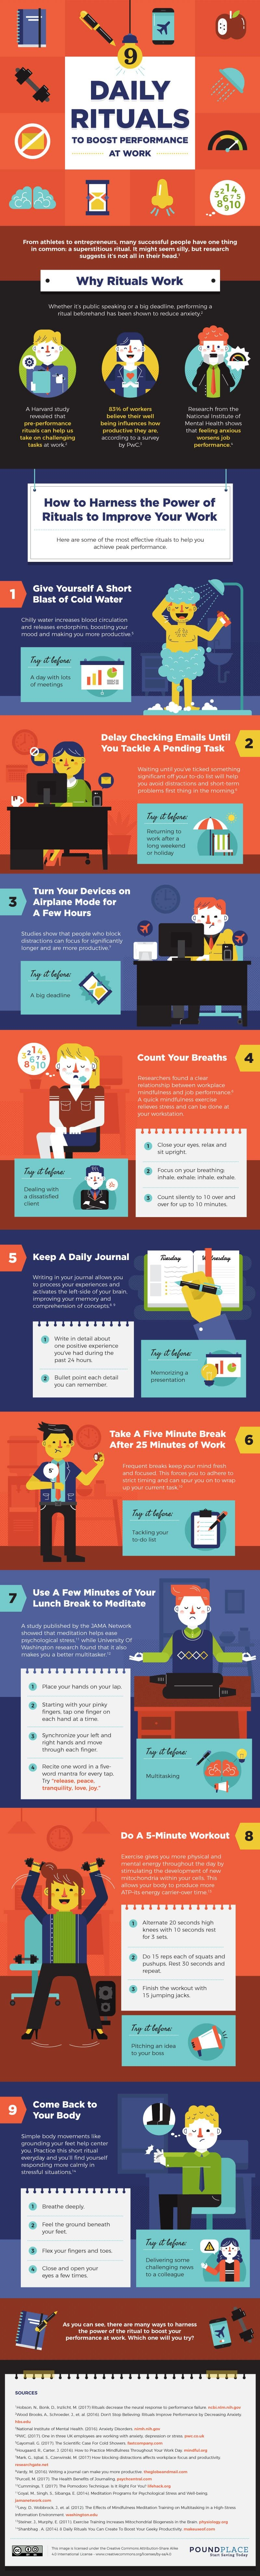 9 Daily Rituals To Boost Performance At Work